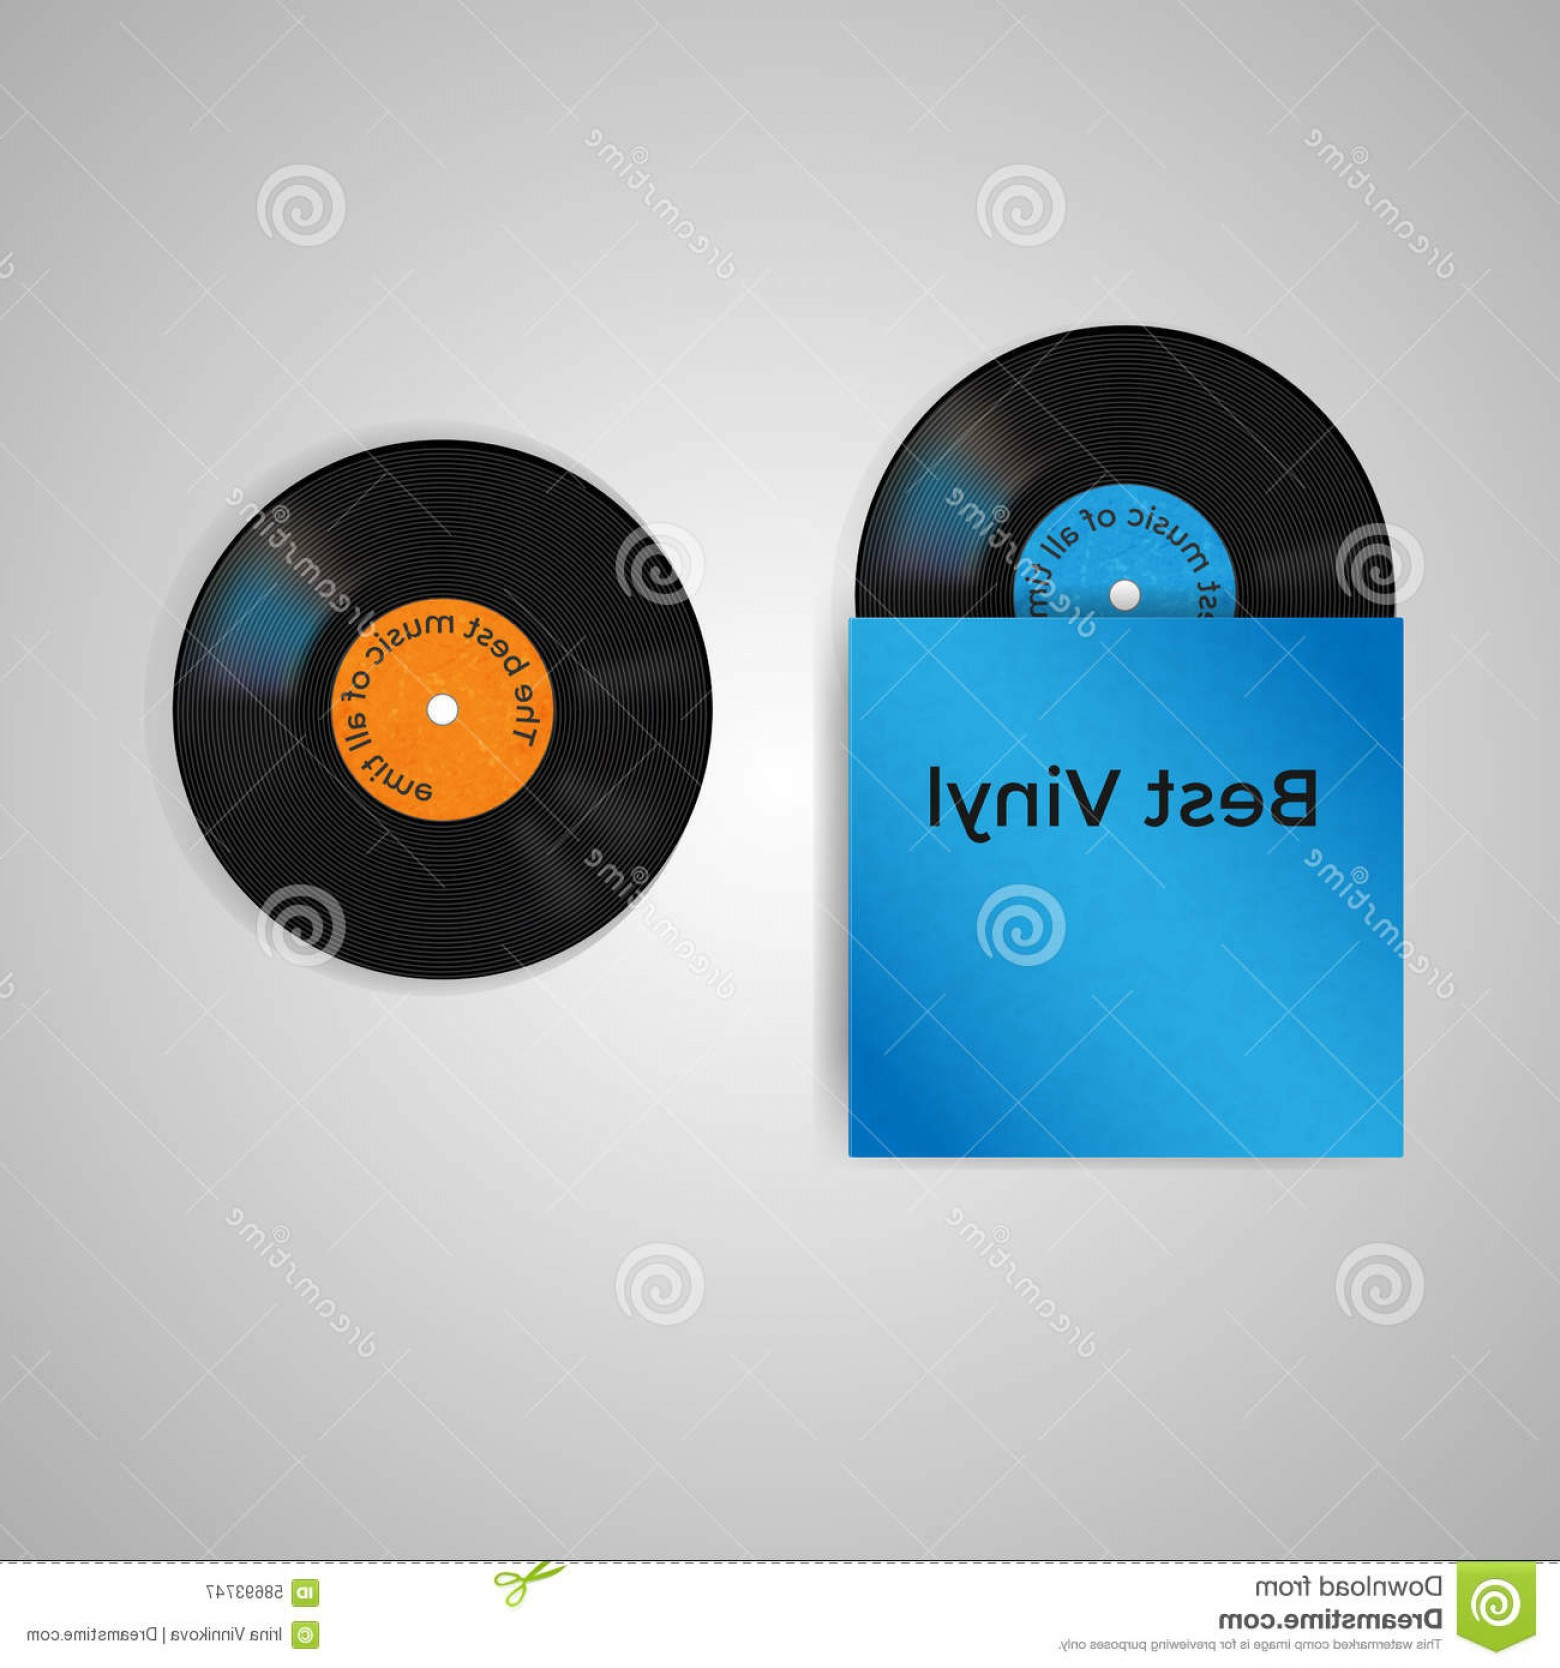 Vector Vinyl Rolls: Stock Illustration Vector Set Blue Vinyl Cover Two Vinyl Records Blue Orange Label Image